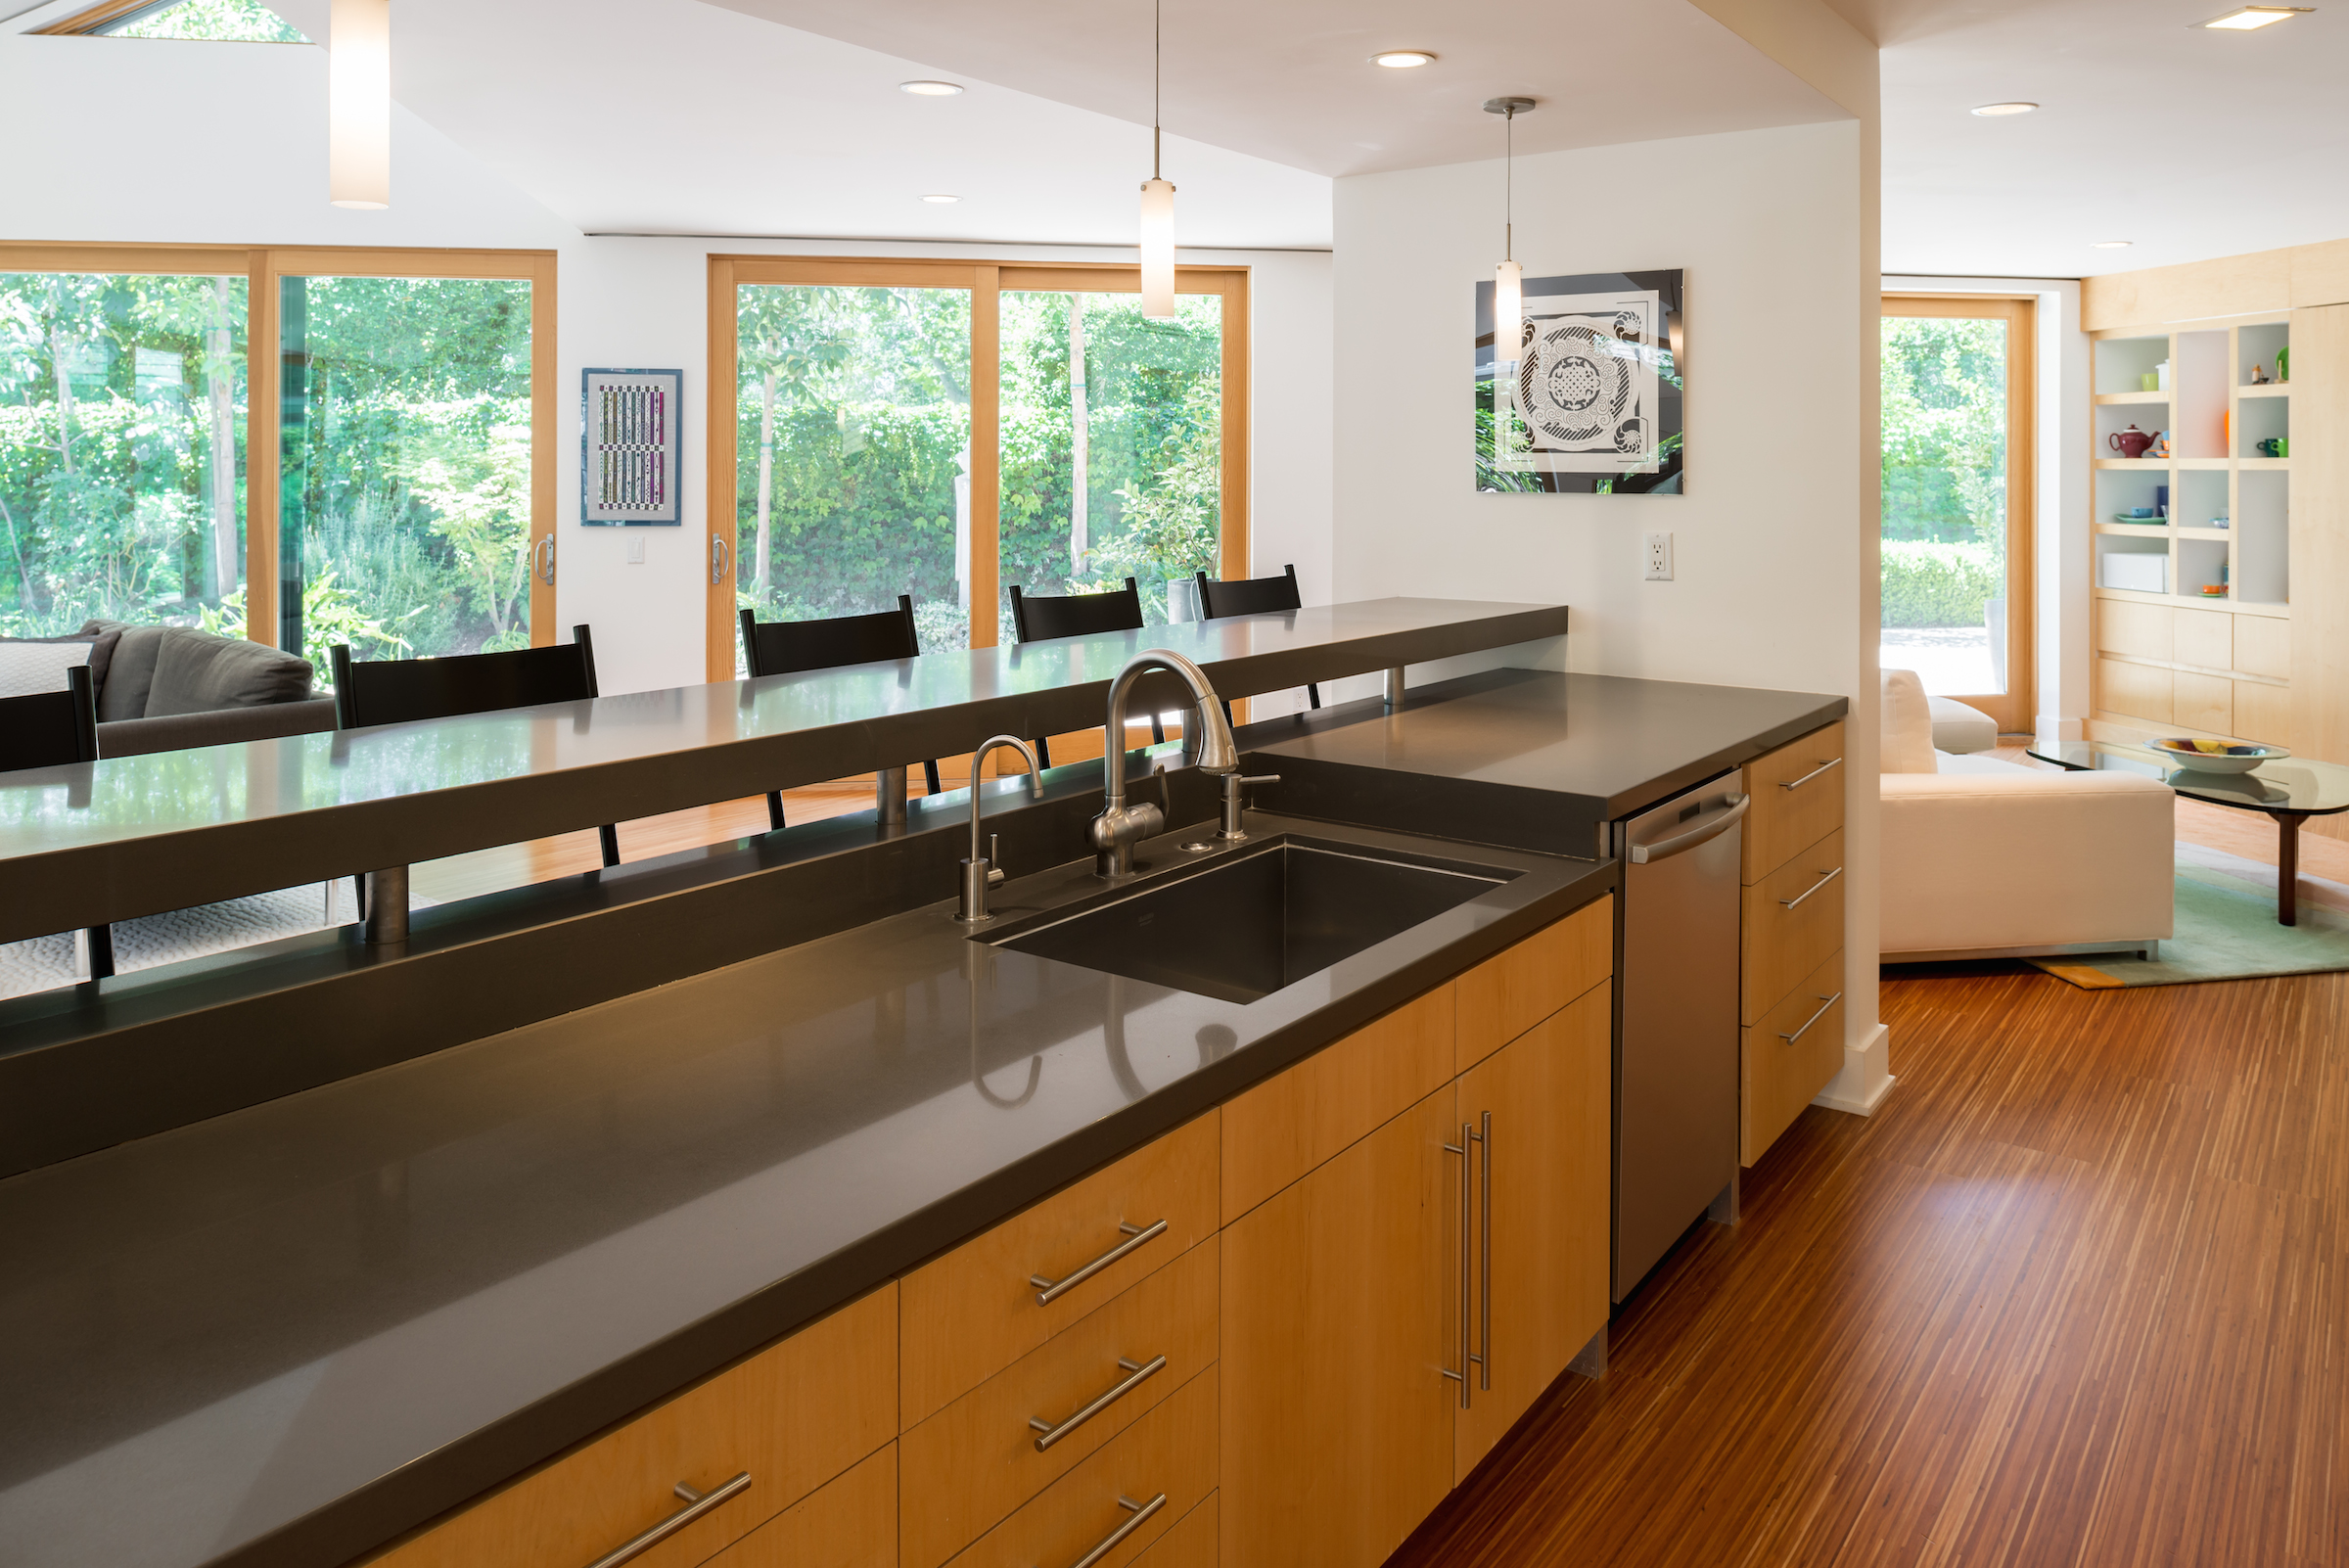 Irvine-Home-Contemporary-Kitchen.jpg